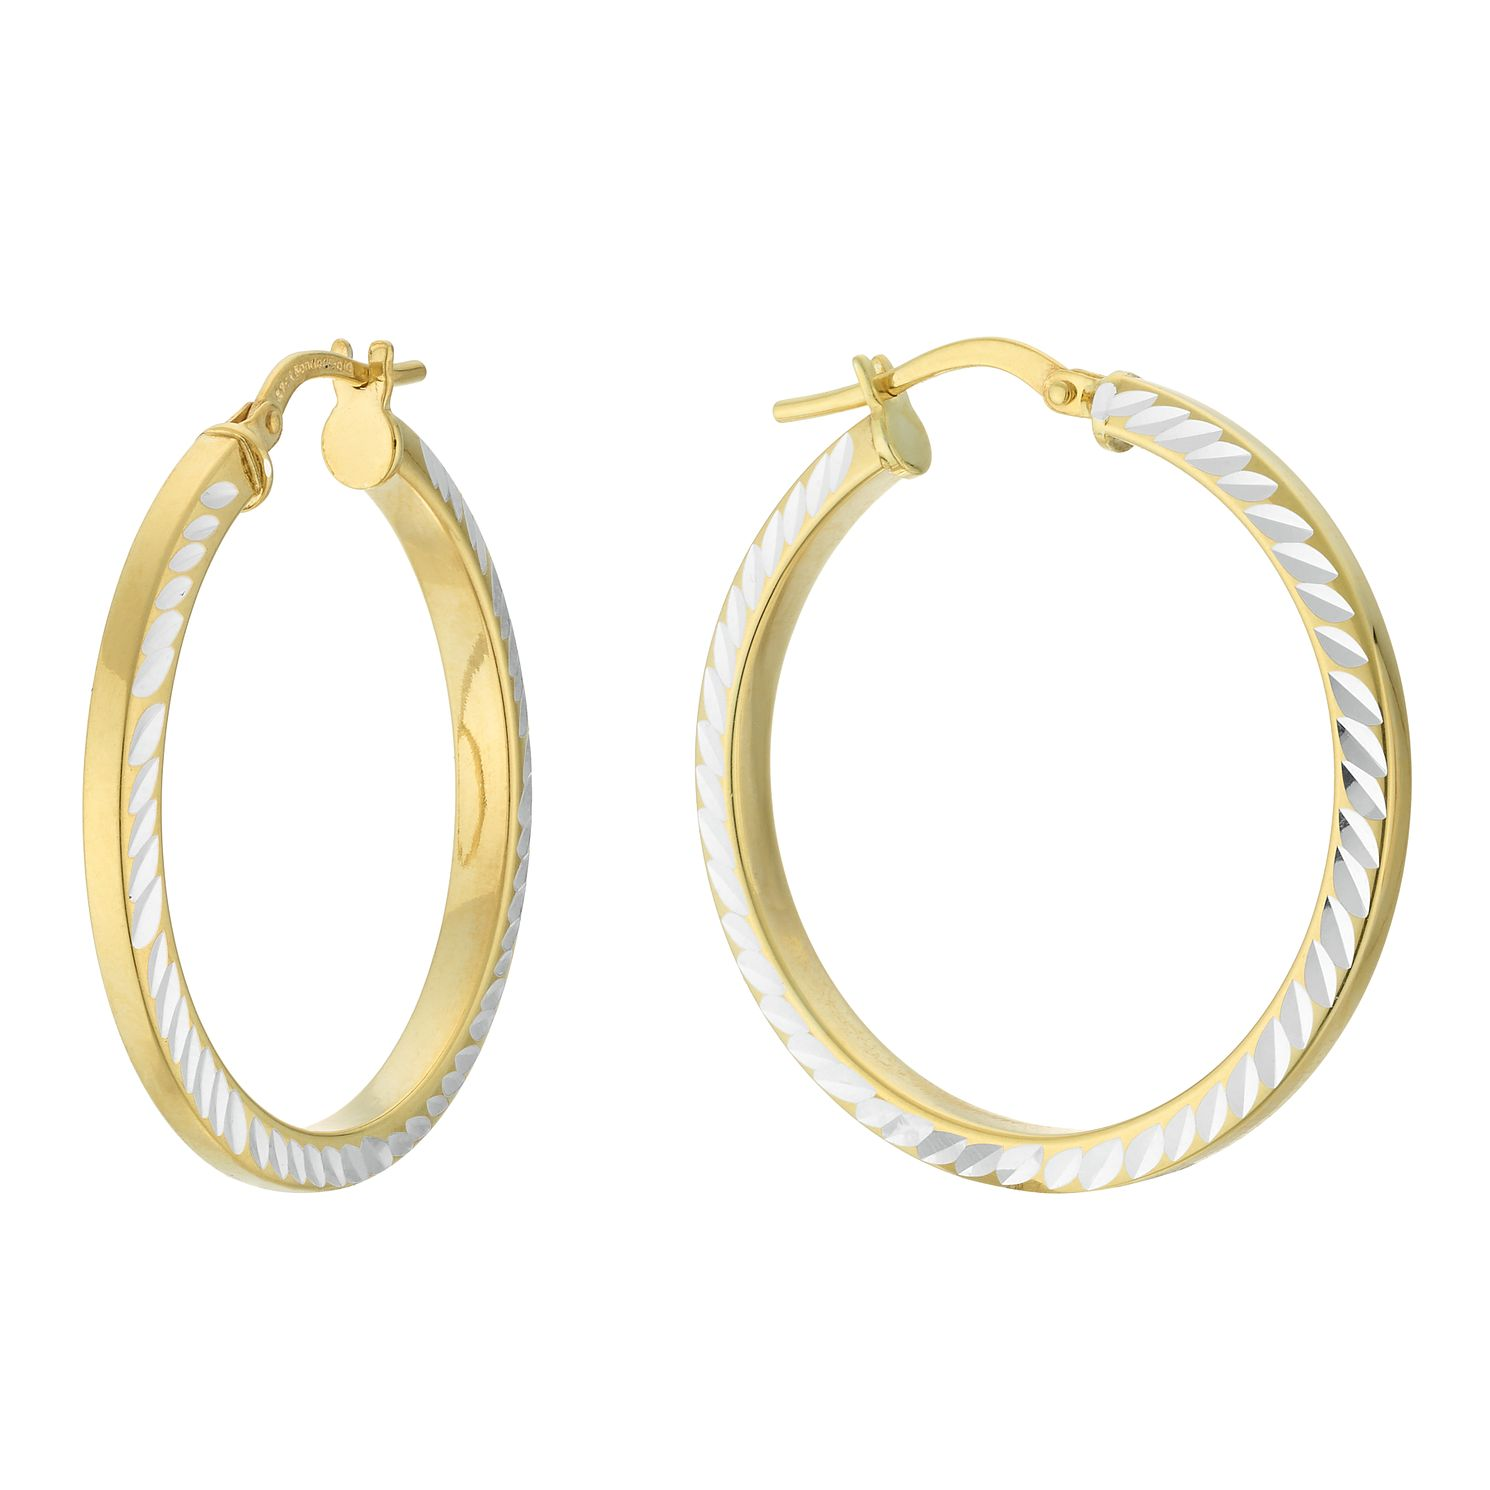 Silver & 9ct Yellow Gold Bonded Two Tone Creole Earrings - Product number 4056345